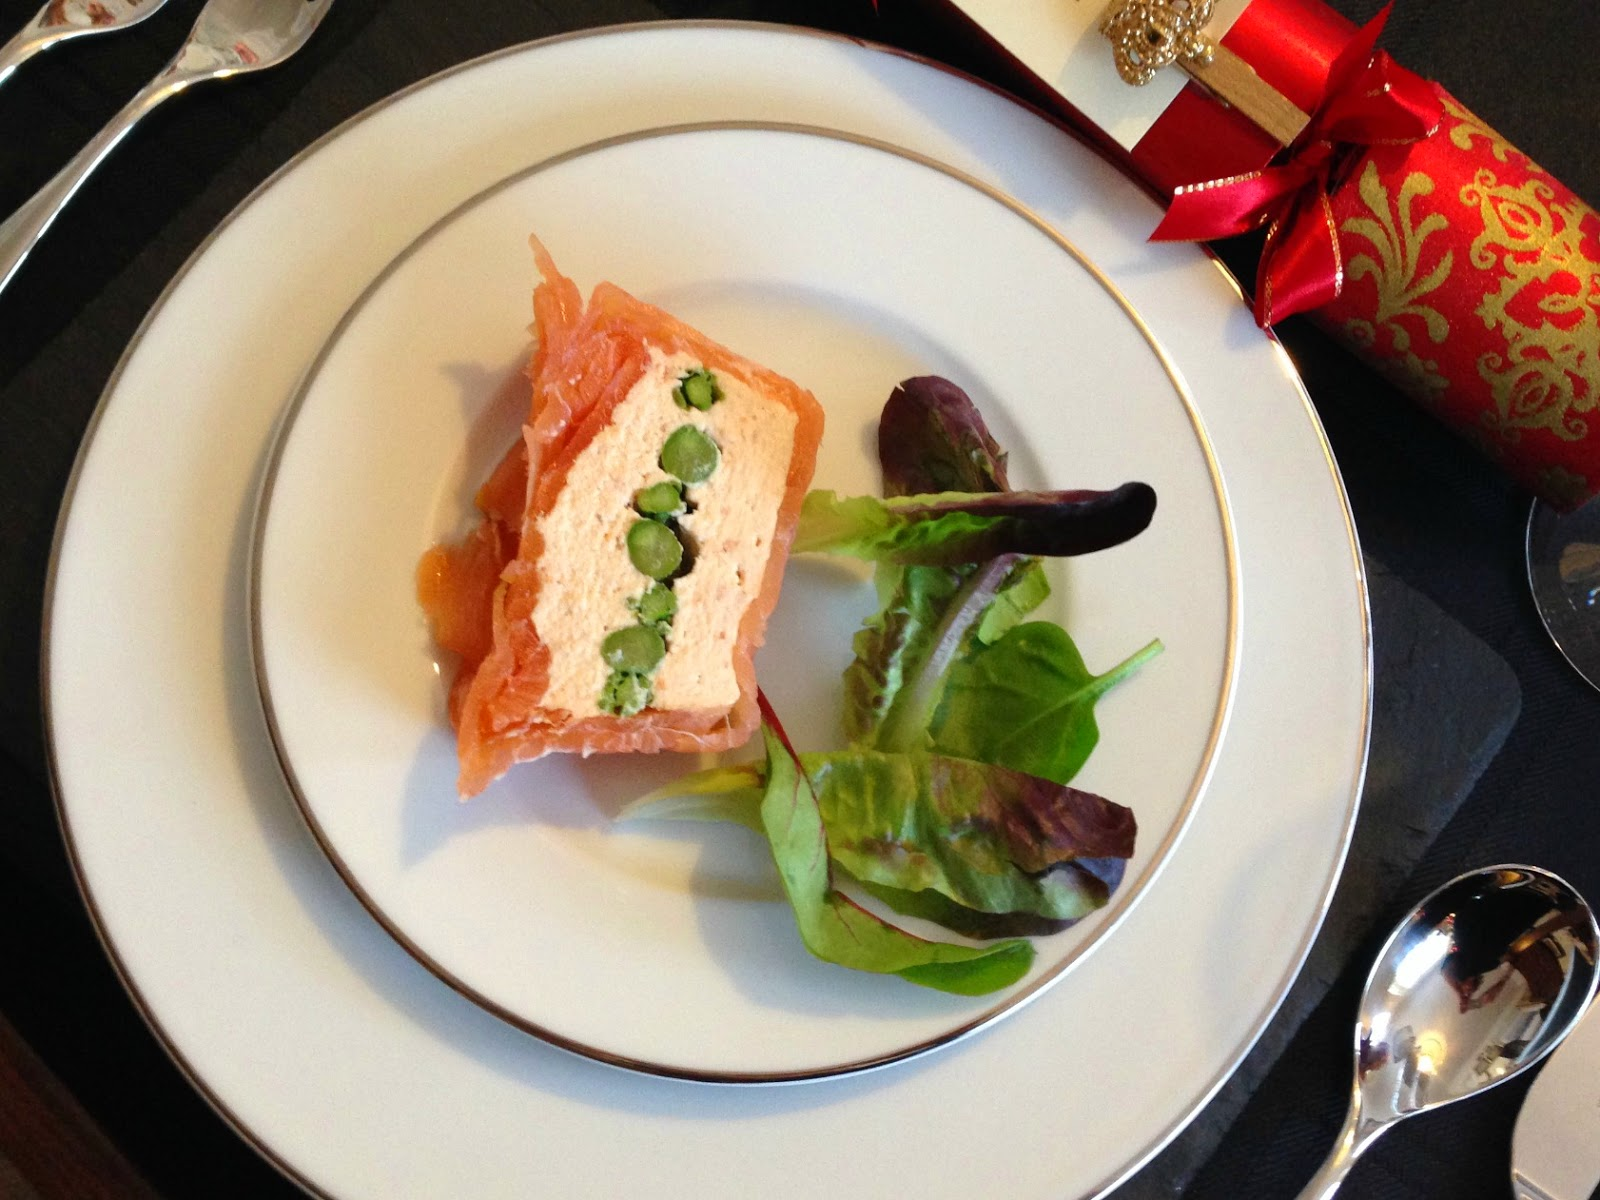 Salmon terrine starter by Mary Berry